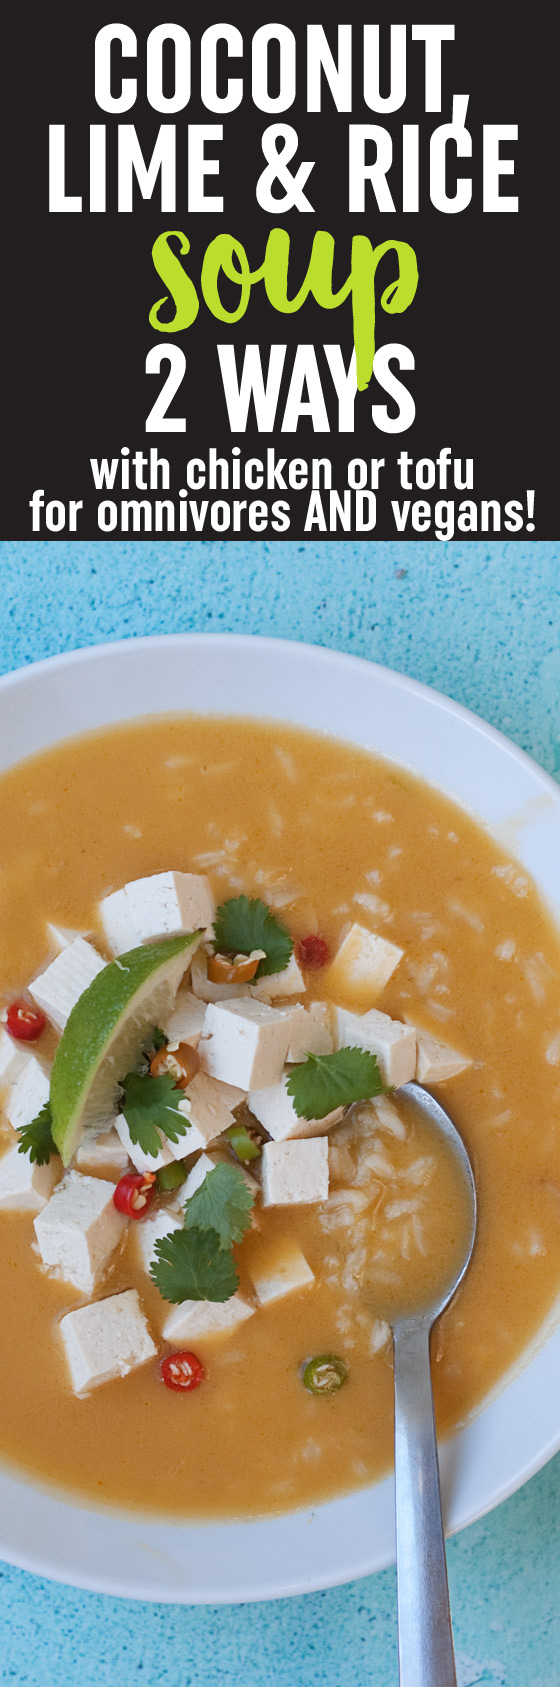 Coconut Lime Rice Soup (2 Ways!) - Kitchen Treaty